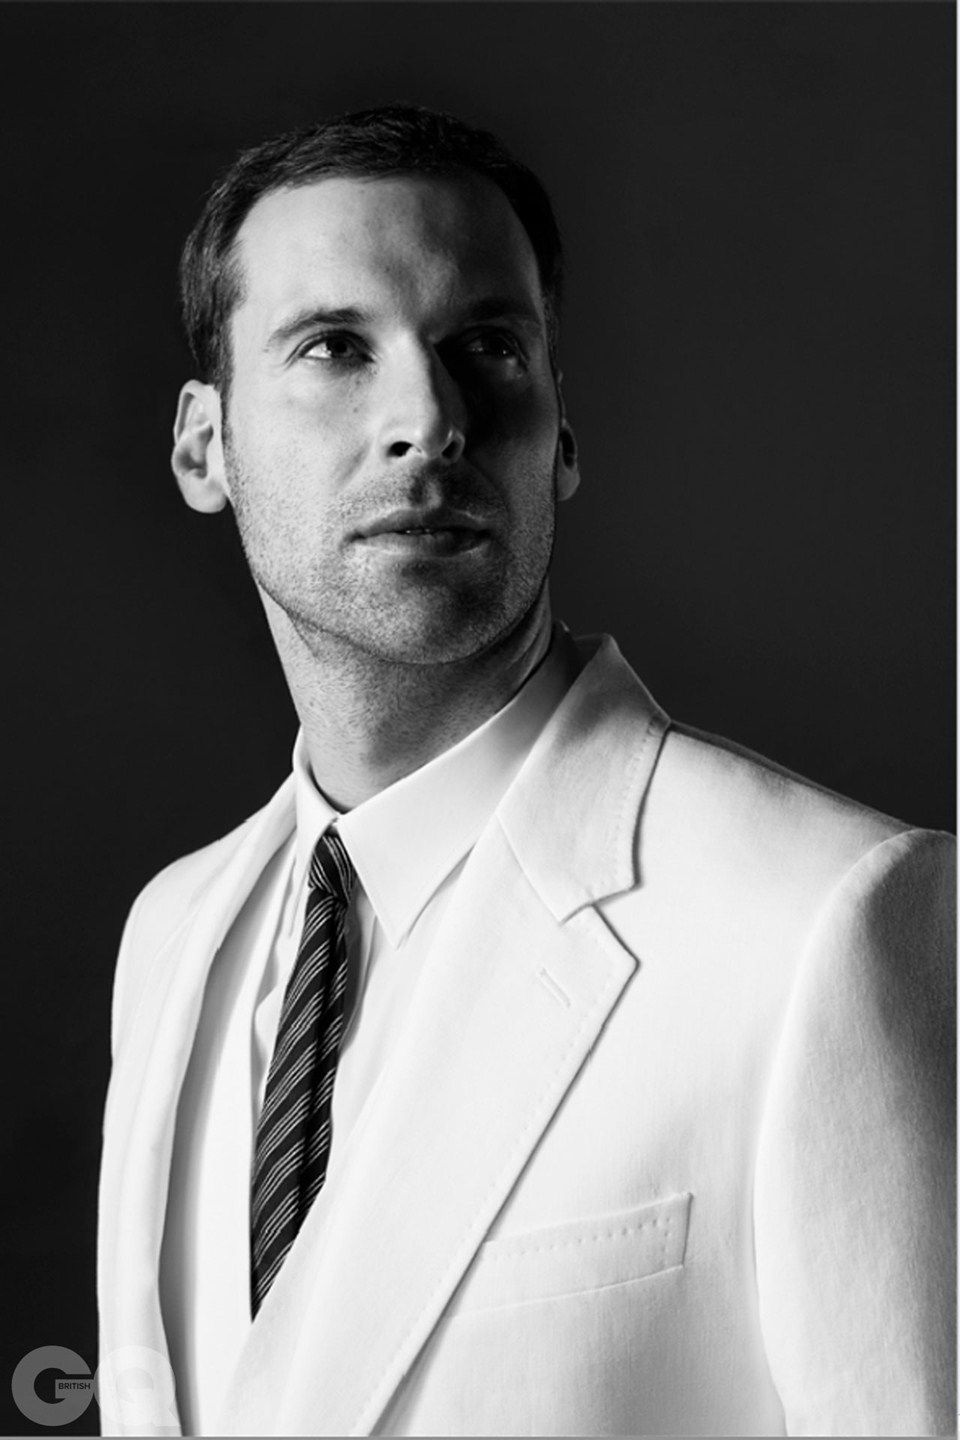 Petr Cech for the GQ magazine